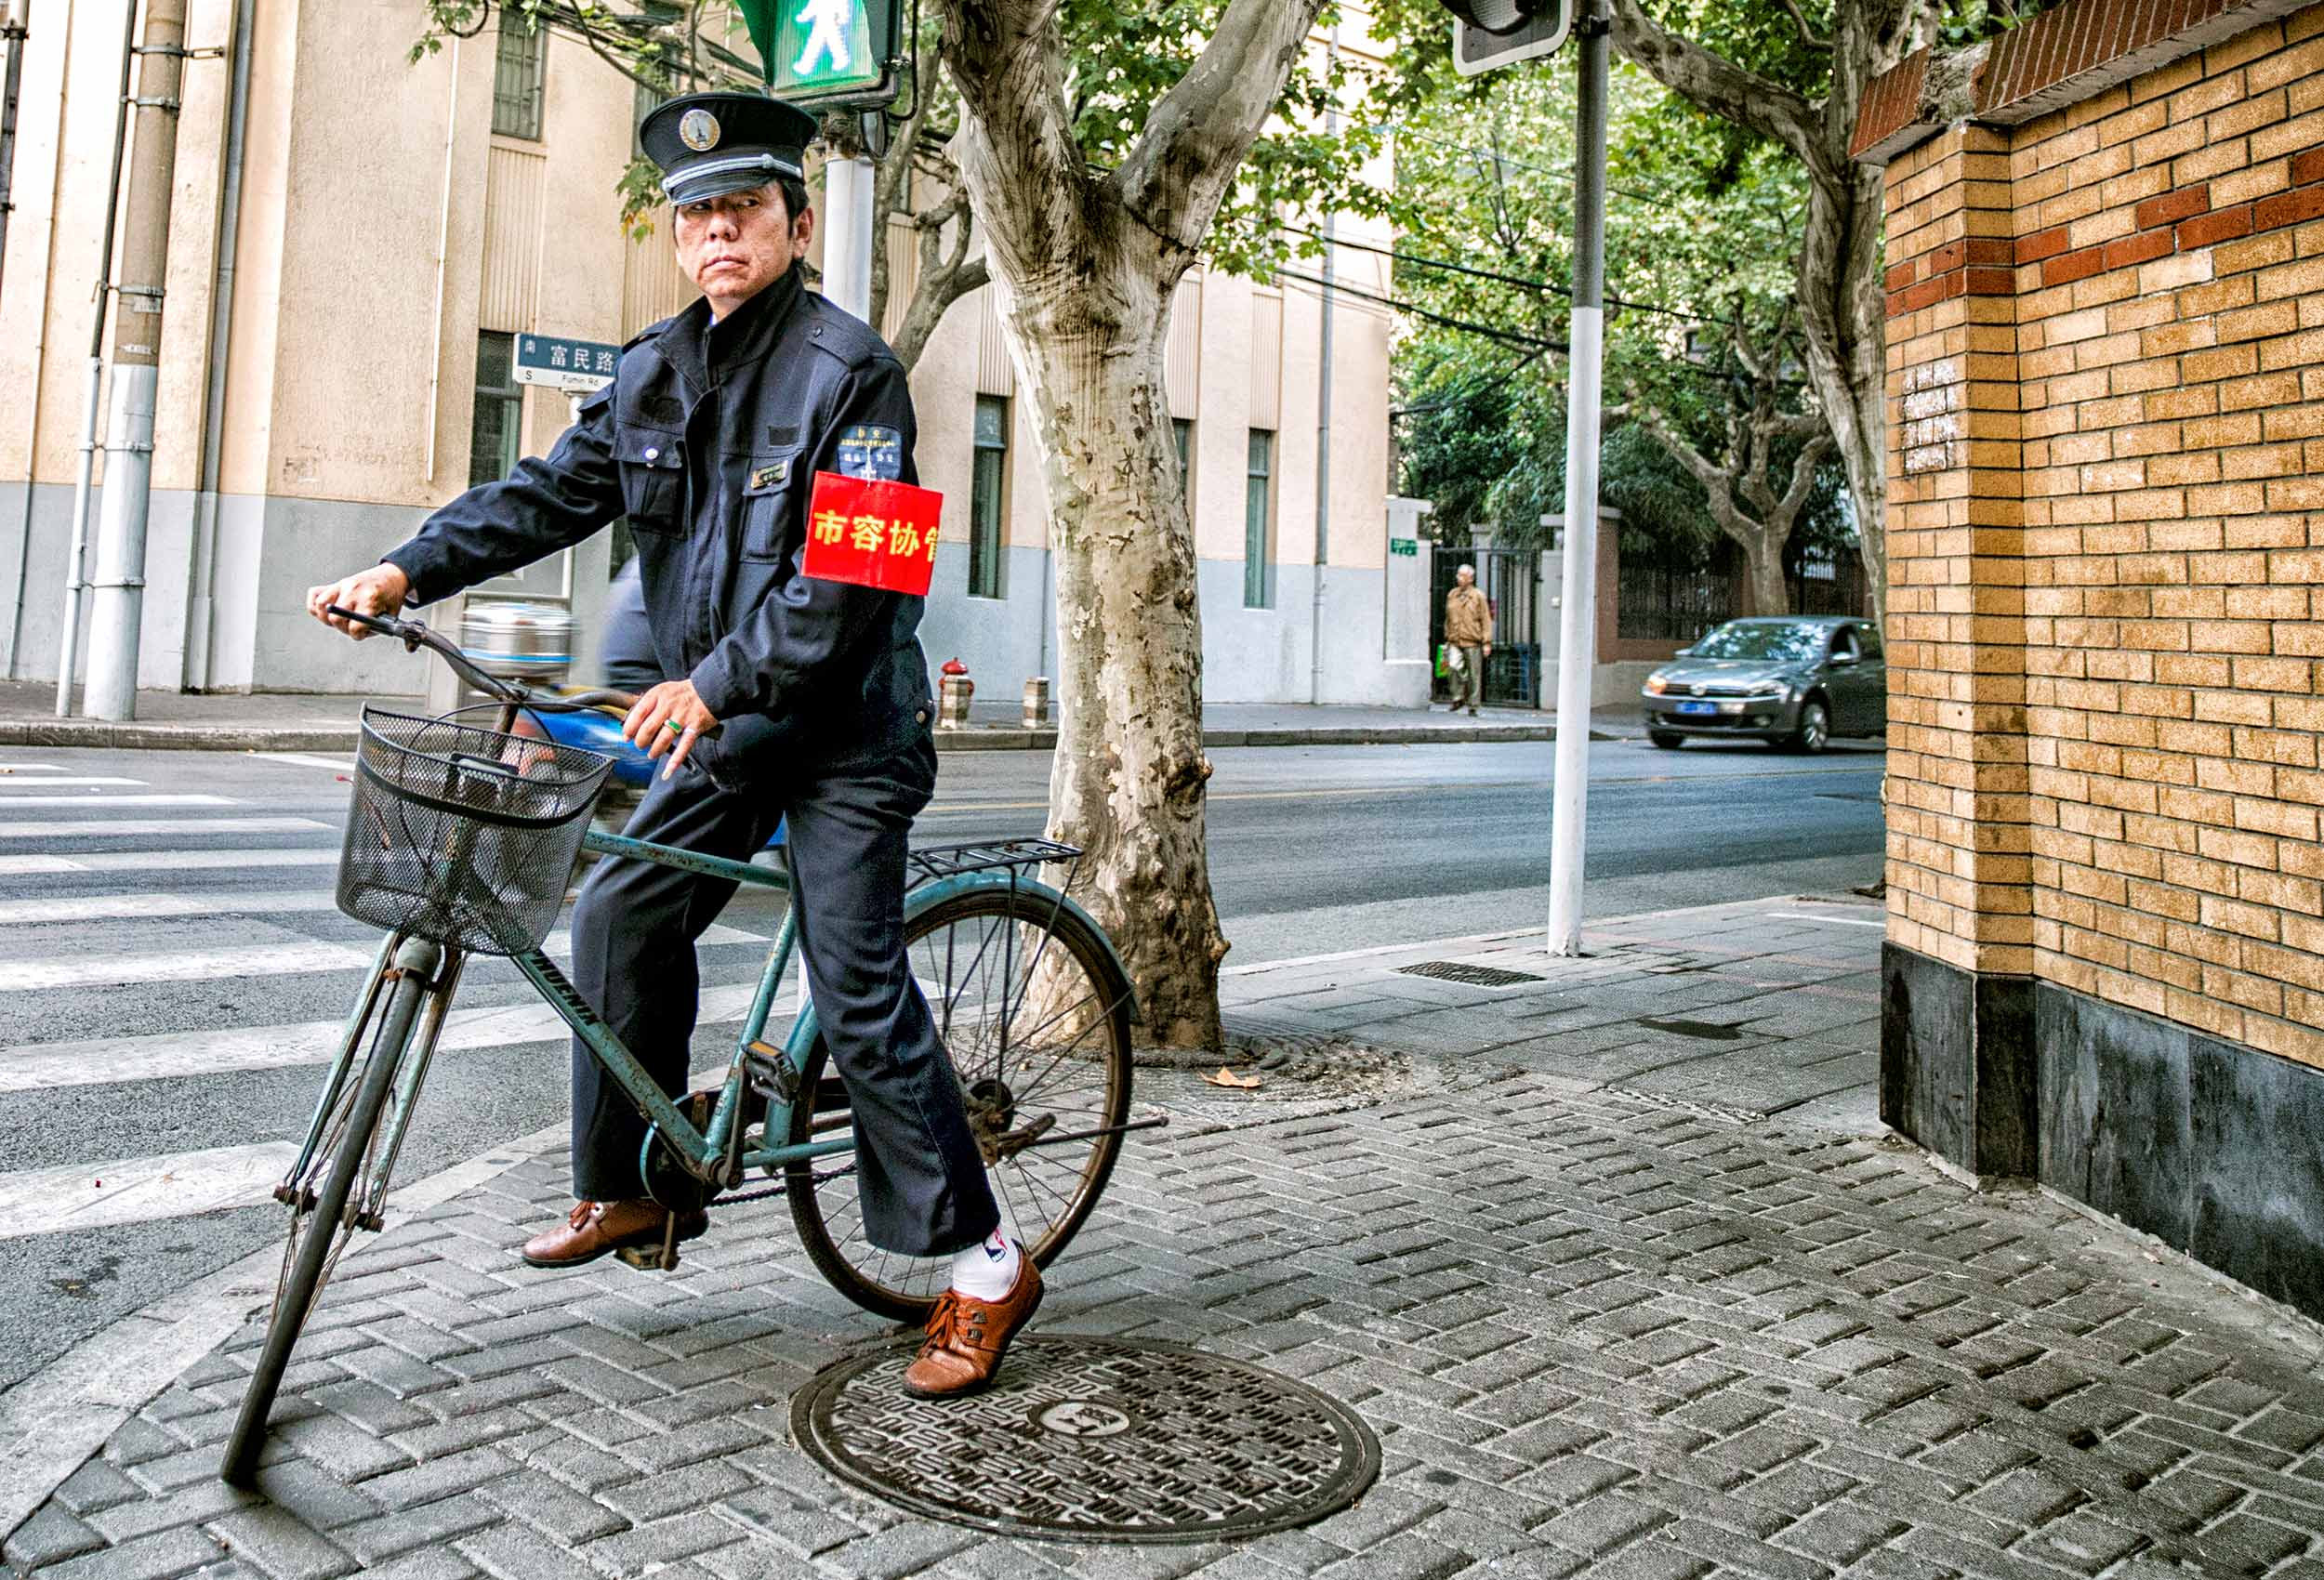 a-chinese-police-patrols-beijing-on-his-bicycle-in-the-city